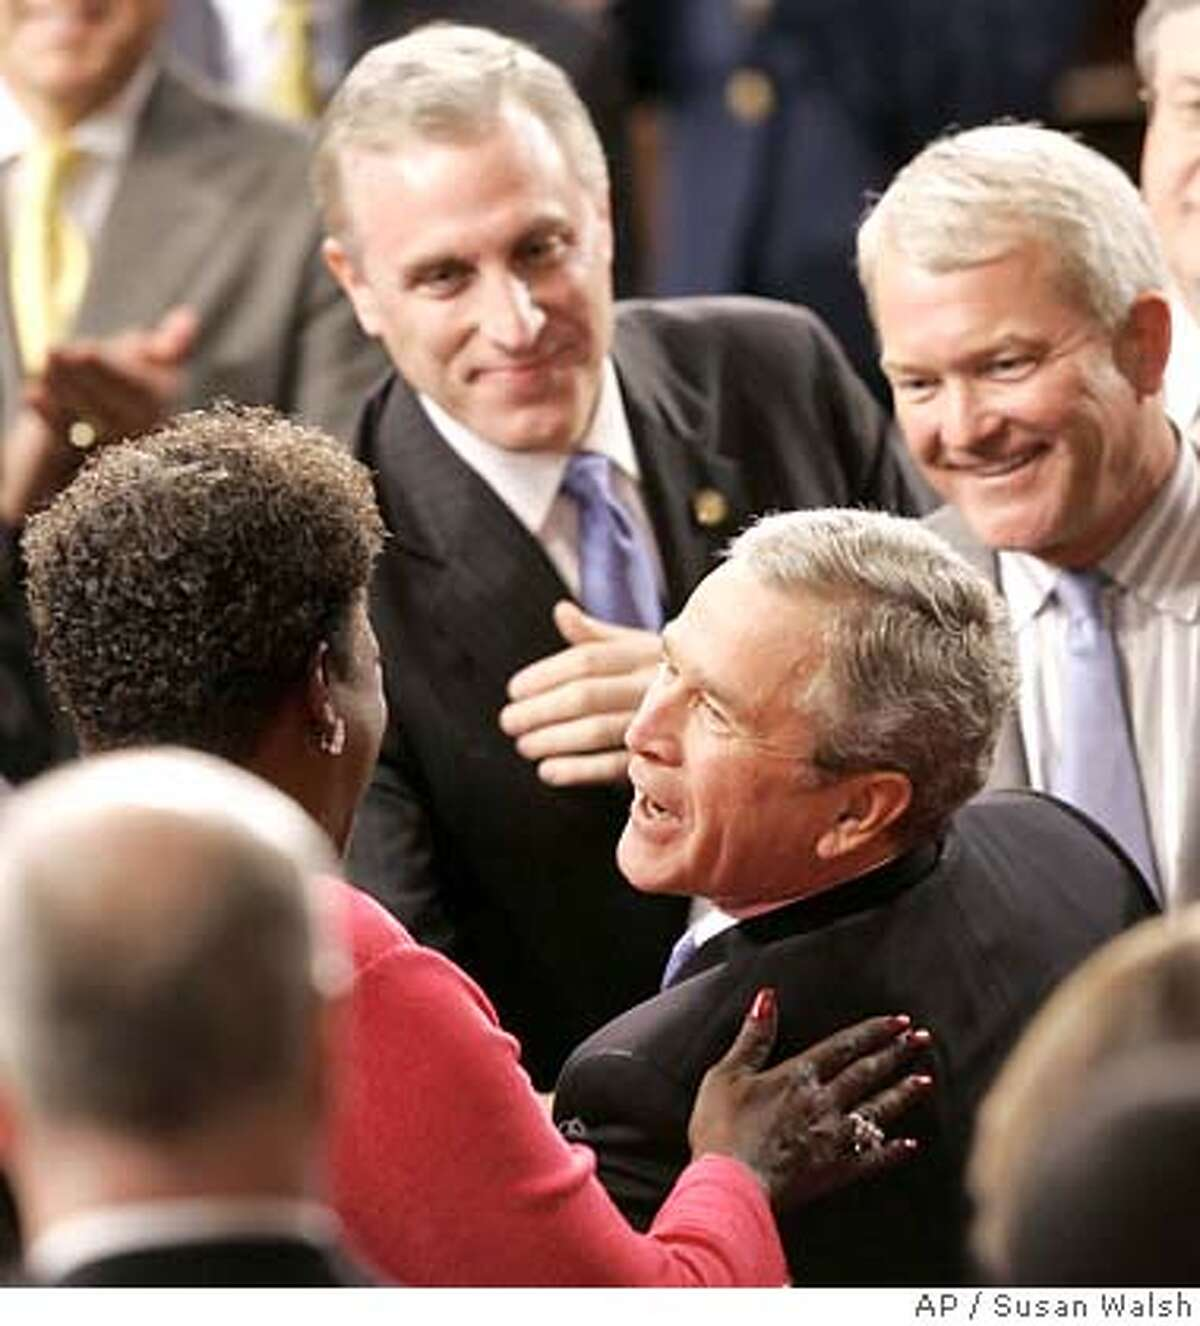 President Bush is greeted by Rep. Stephanie Tubbs Jones, D-Ohio, on Capitol Hill, Tuesday, Jan. 31, 2006, prior to delivering his State of the Union address. Rep. Mark Foley, R-Fla. is at right. (AP Photo/Susan Walsh)